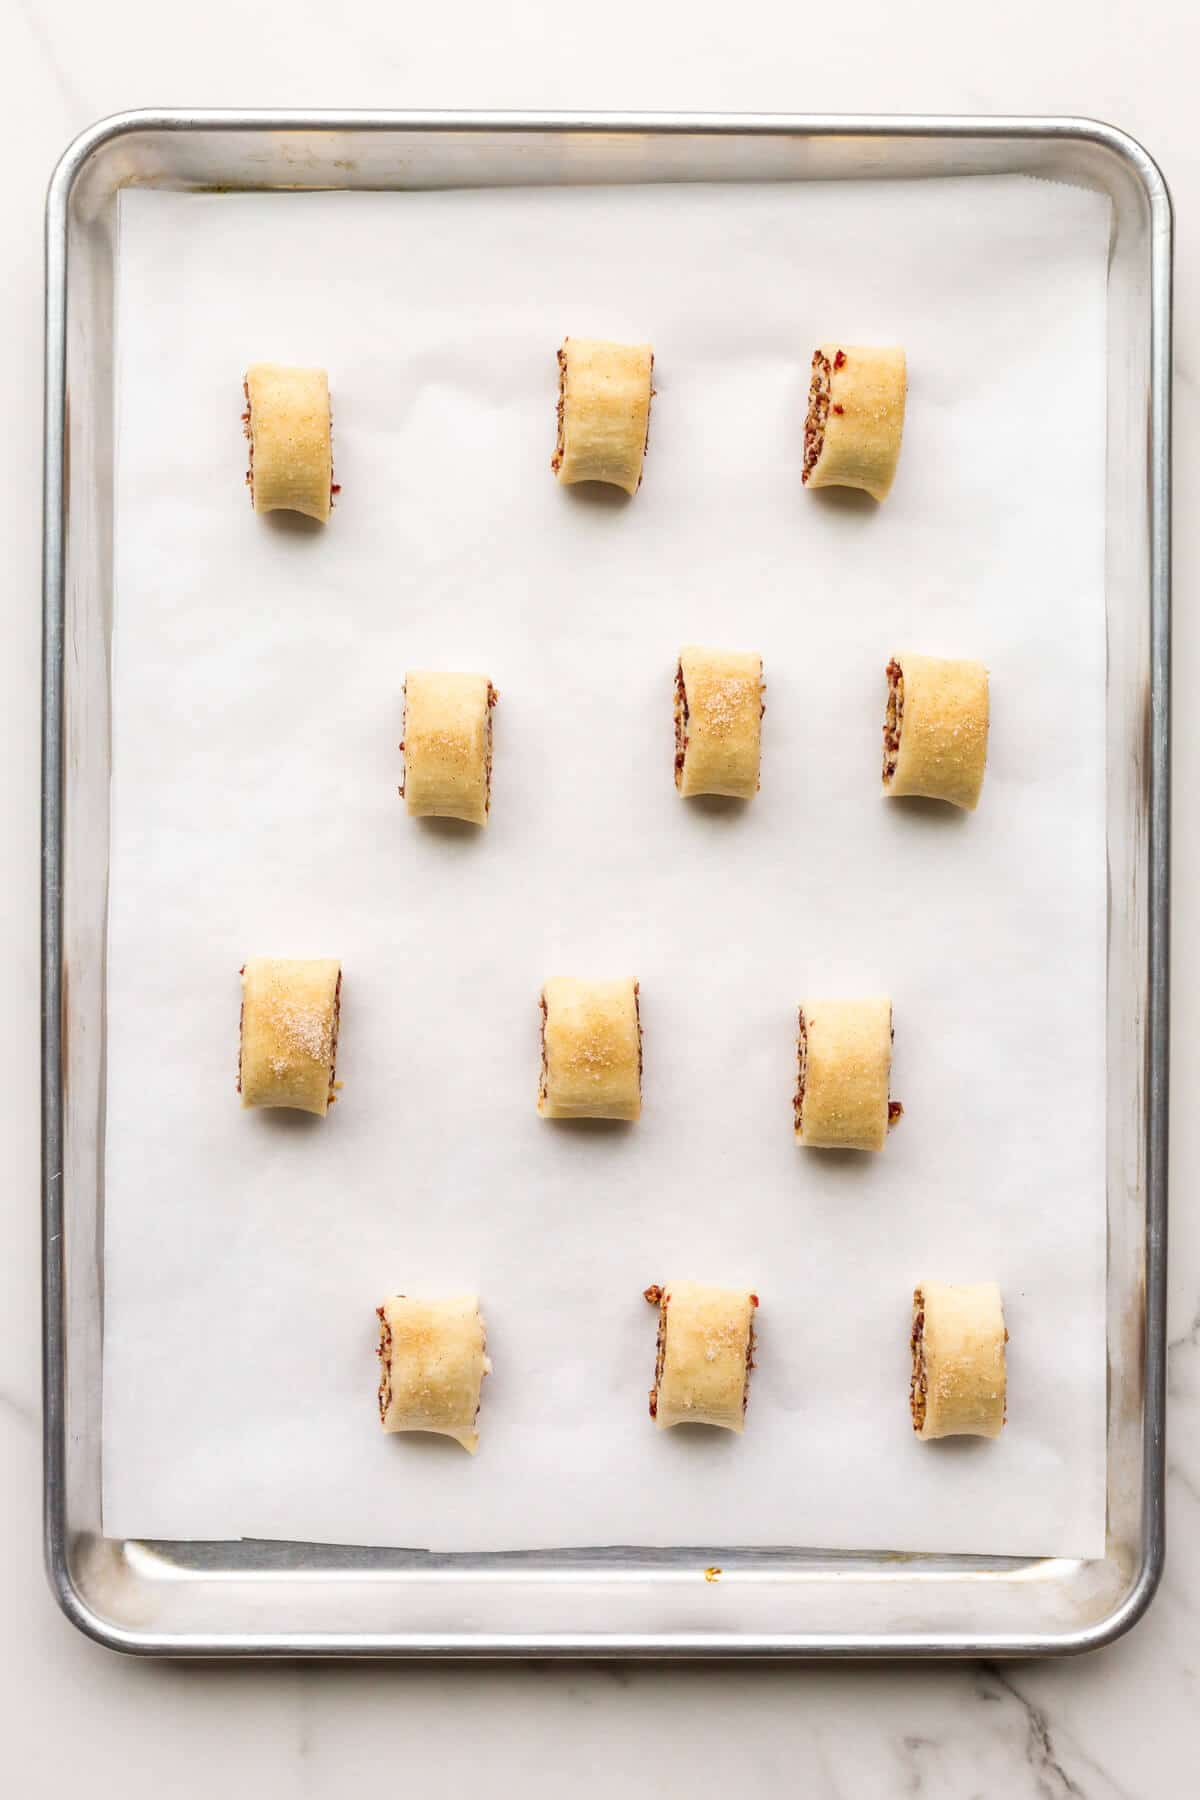 Rugelach before baking on a parchment-lined baking sheet.